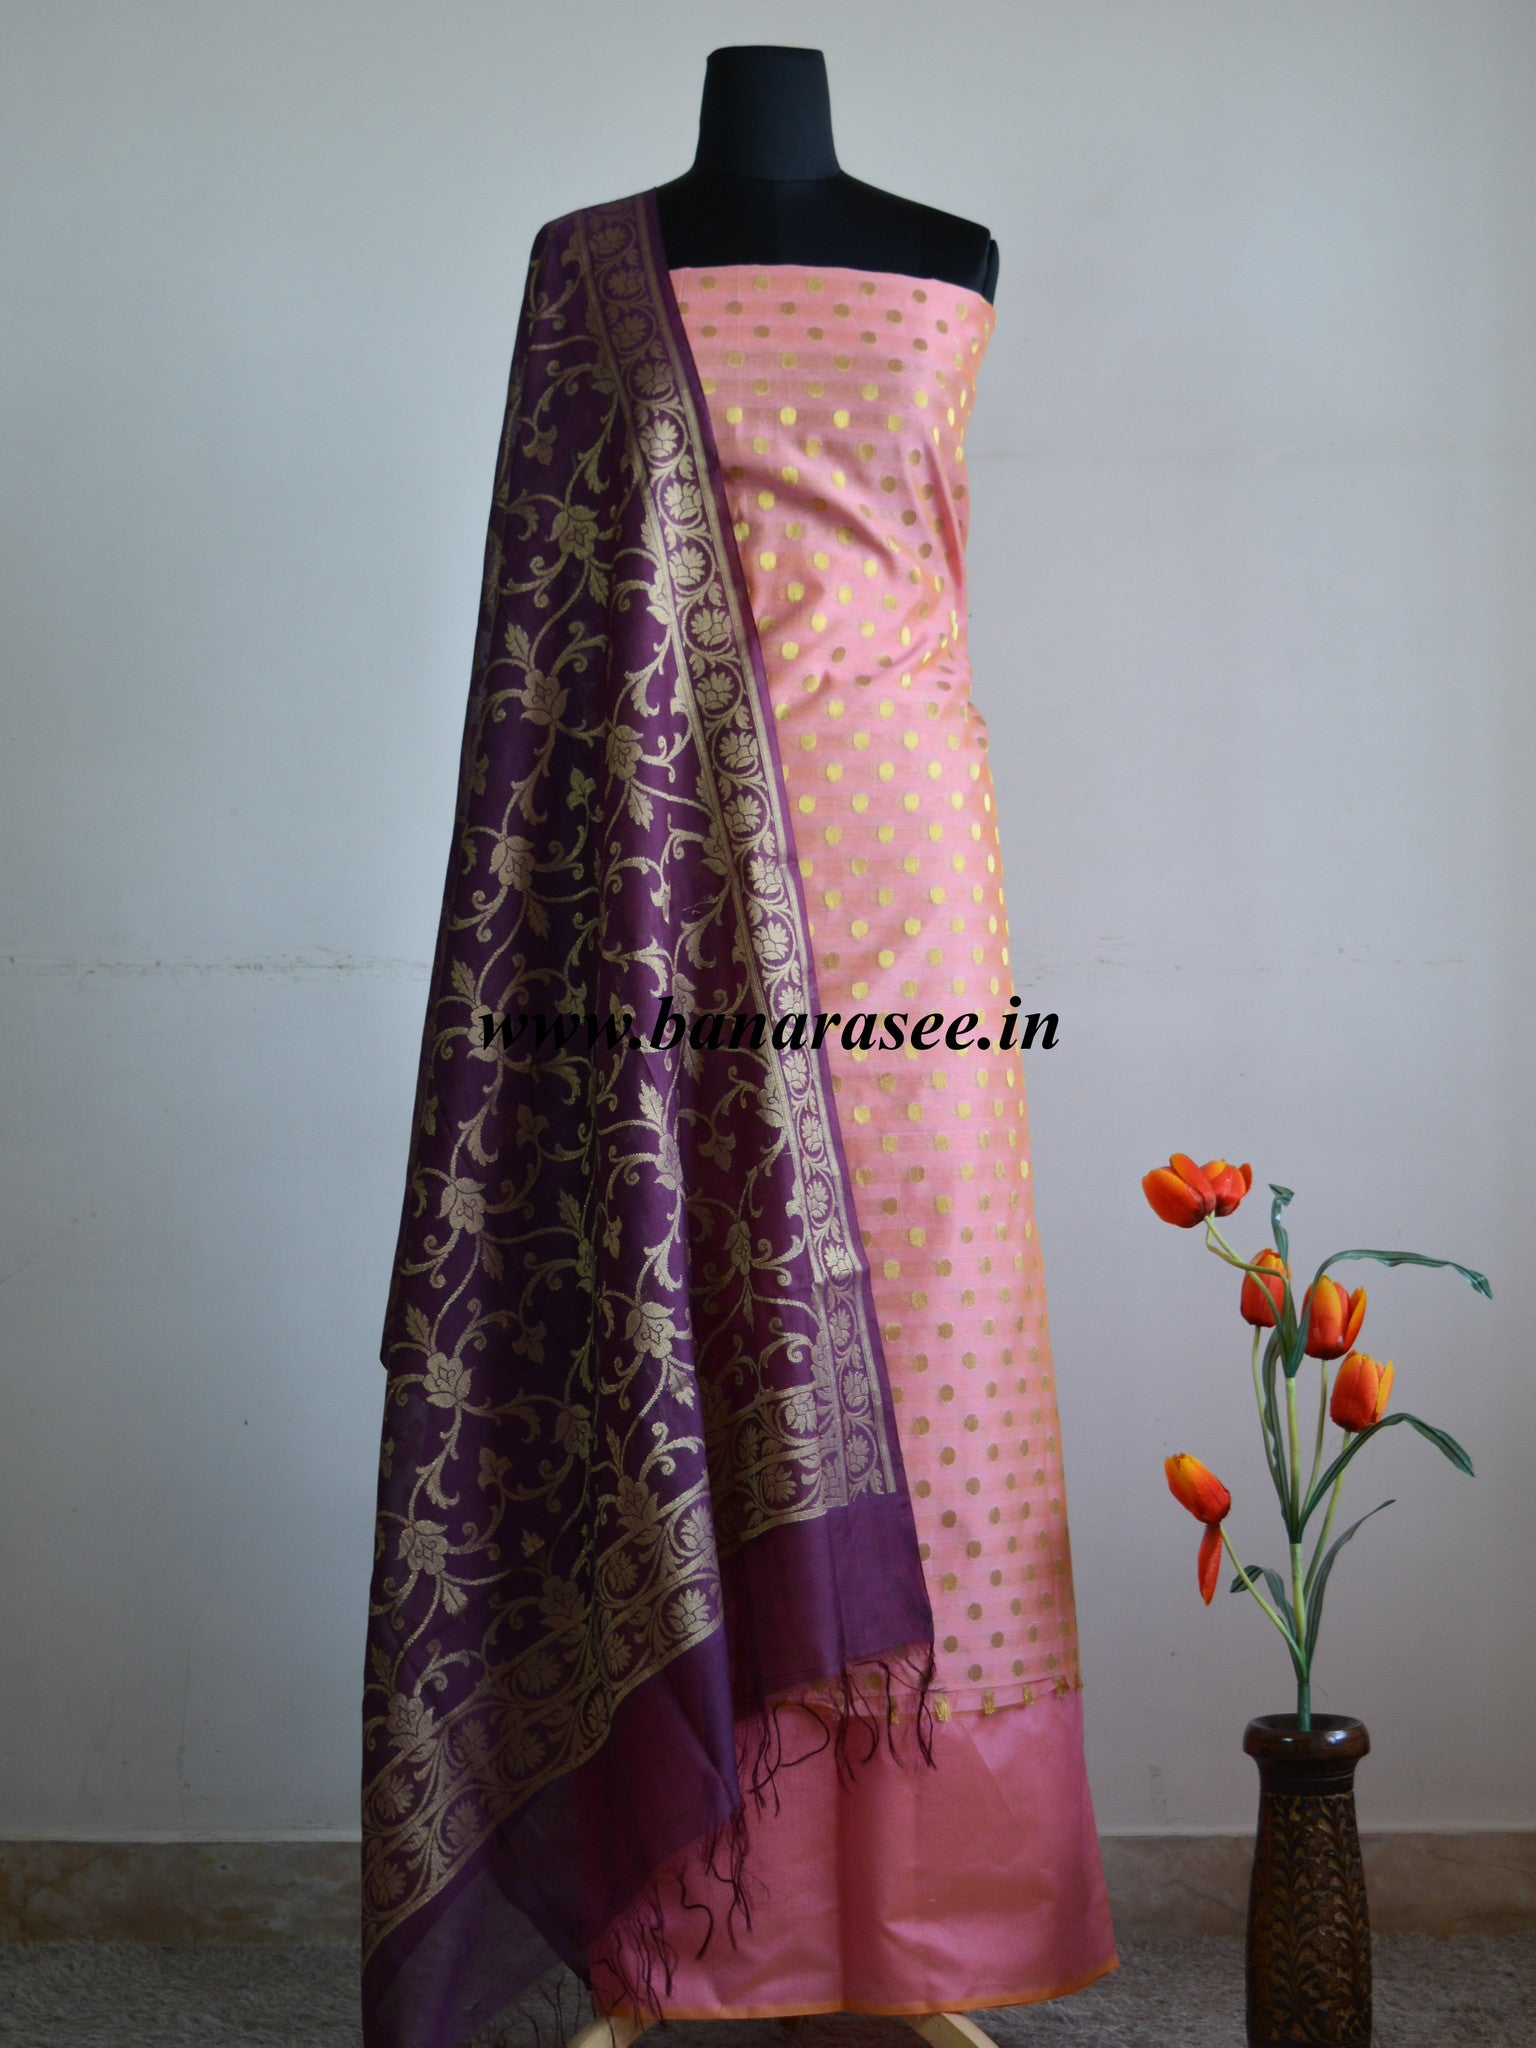 Banarasee Chanderi Cotton Salwar Kameez Zari Polka Dot Buti Design Fabric & Wine Jaal Dupatta-Peach